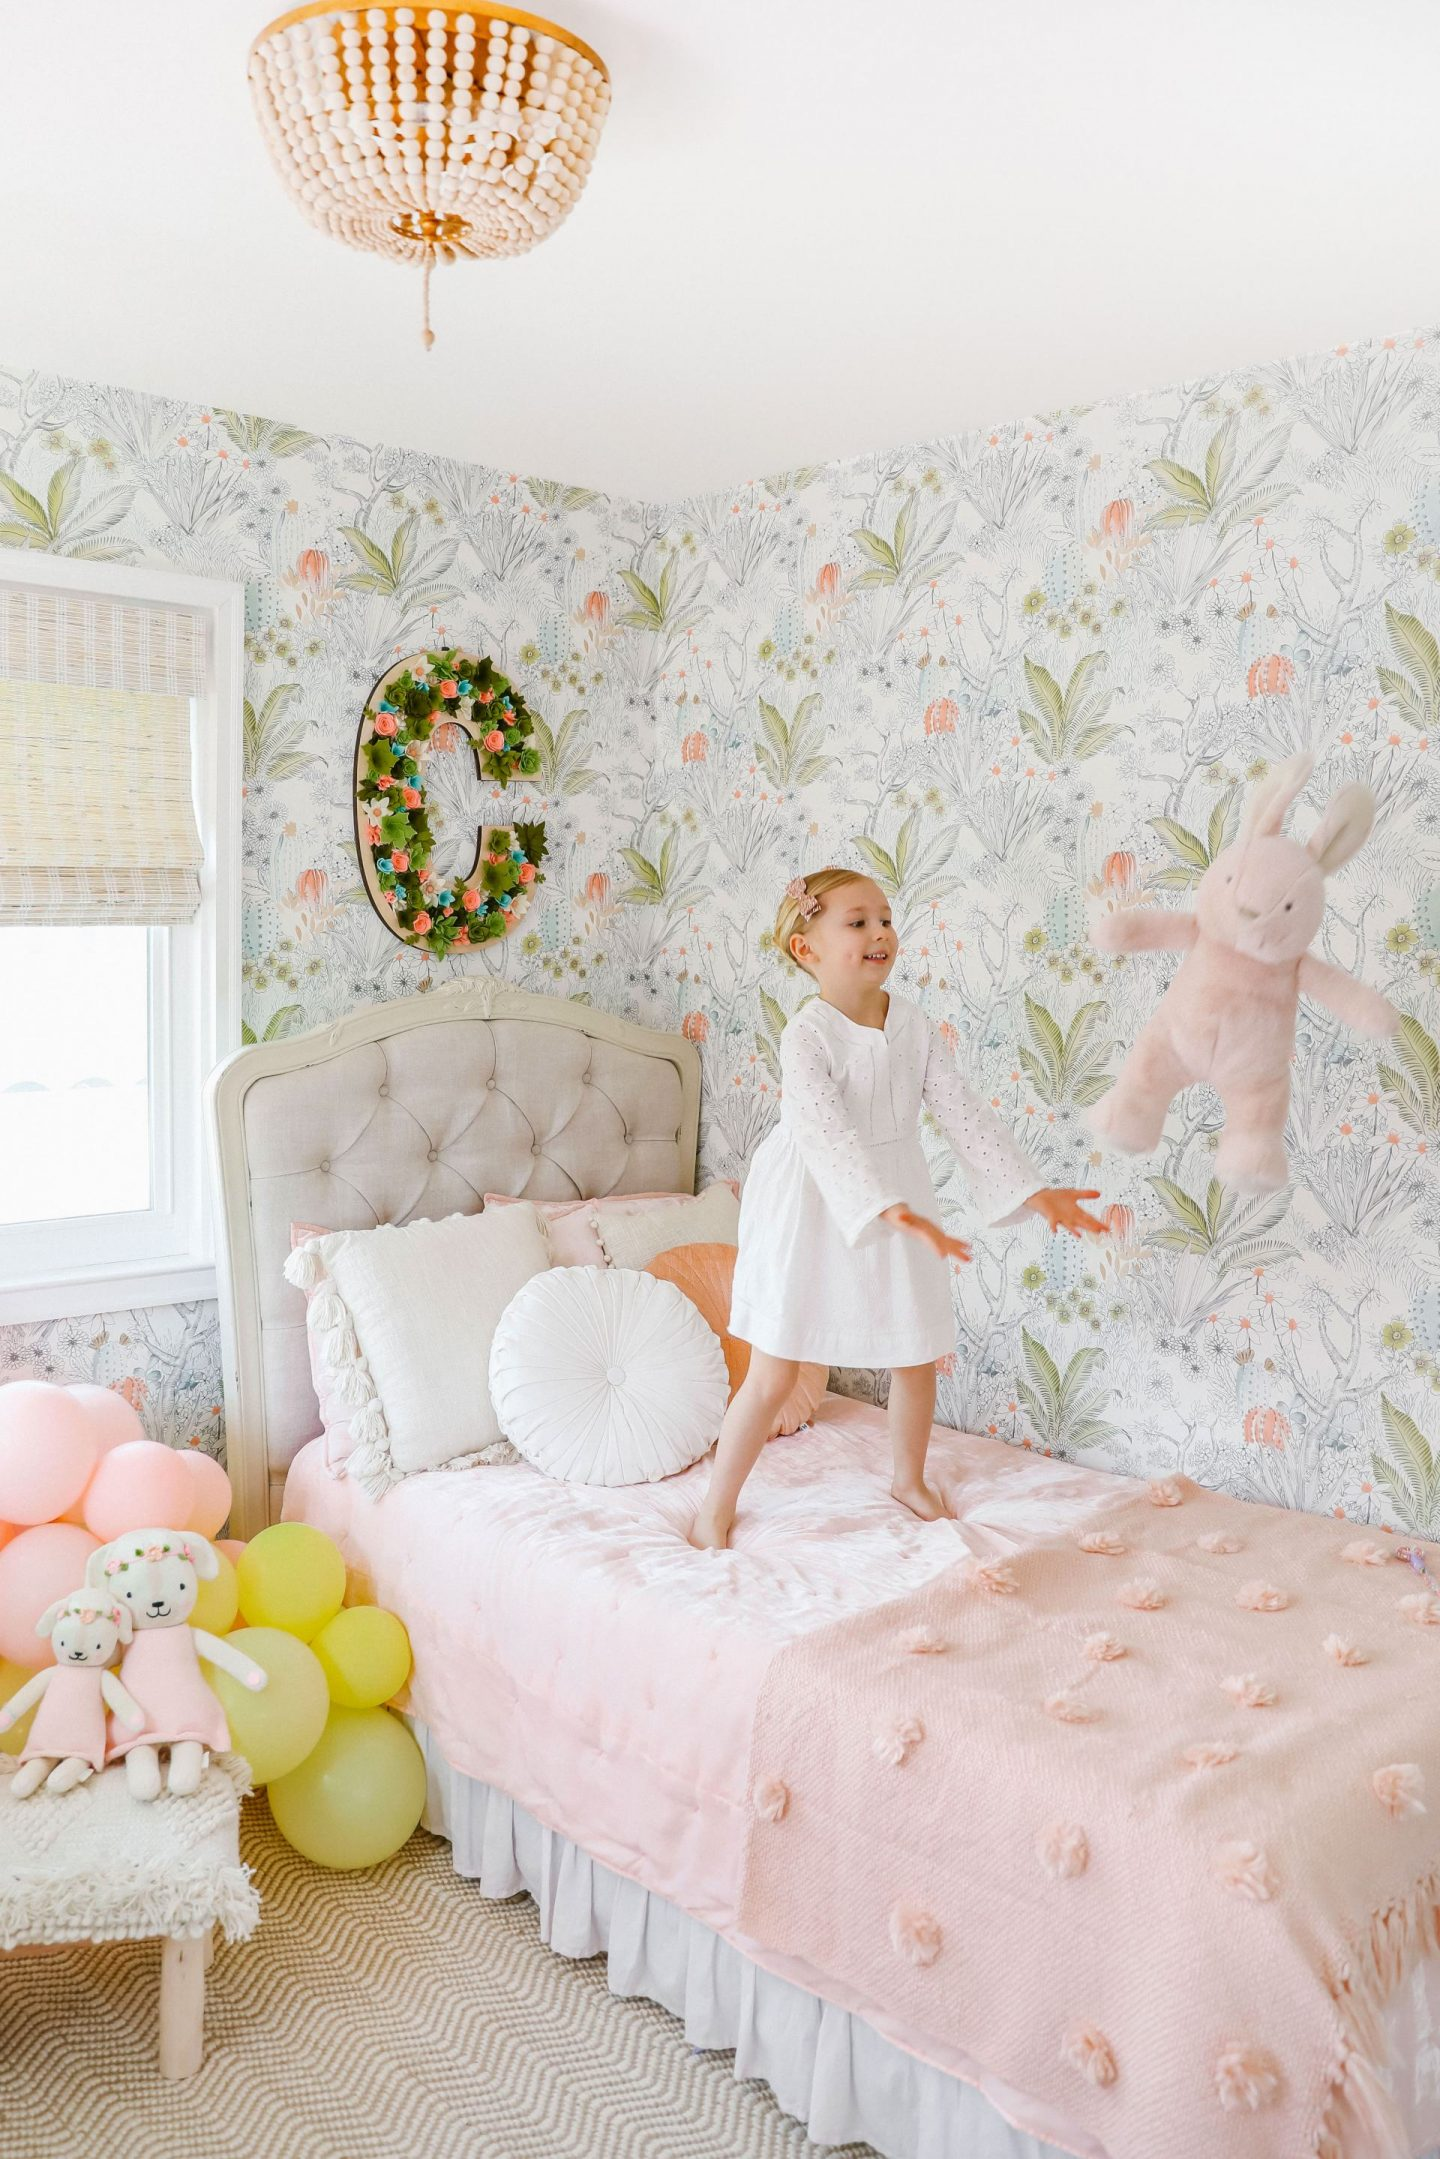 Green and pink boho girls room décor inspiration with Anthropologie wallpaper, Paynes Gray rug, select blinds wooden shades. By top San Francisco fashion blog, Lombard and Fifth.